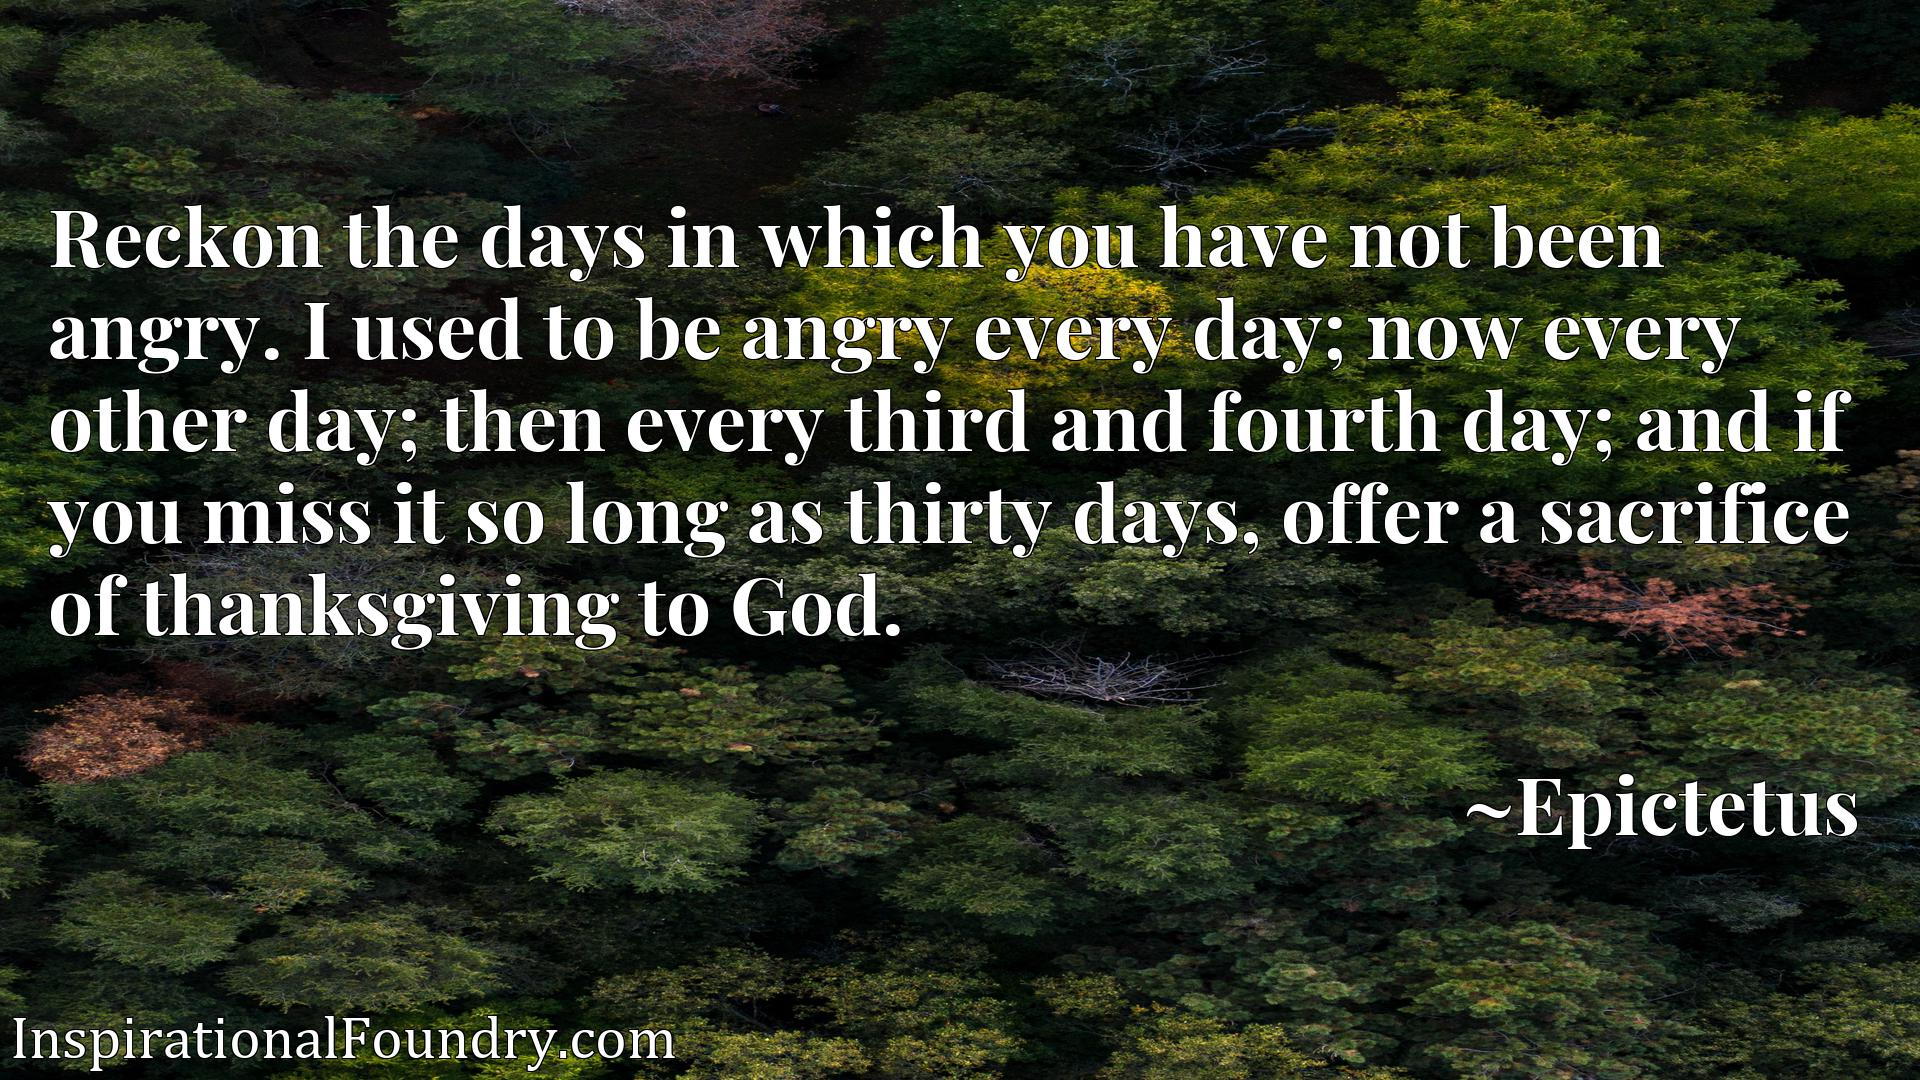 Reckon the days in which you have not been angry. I used to be angry every day; now every other day; then every third and fourth day; and if you miss it so long as thirty days, offer a sacrifice of thanksgiving to God.